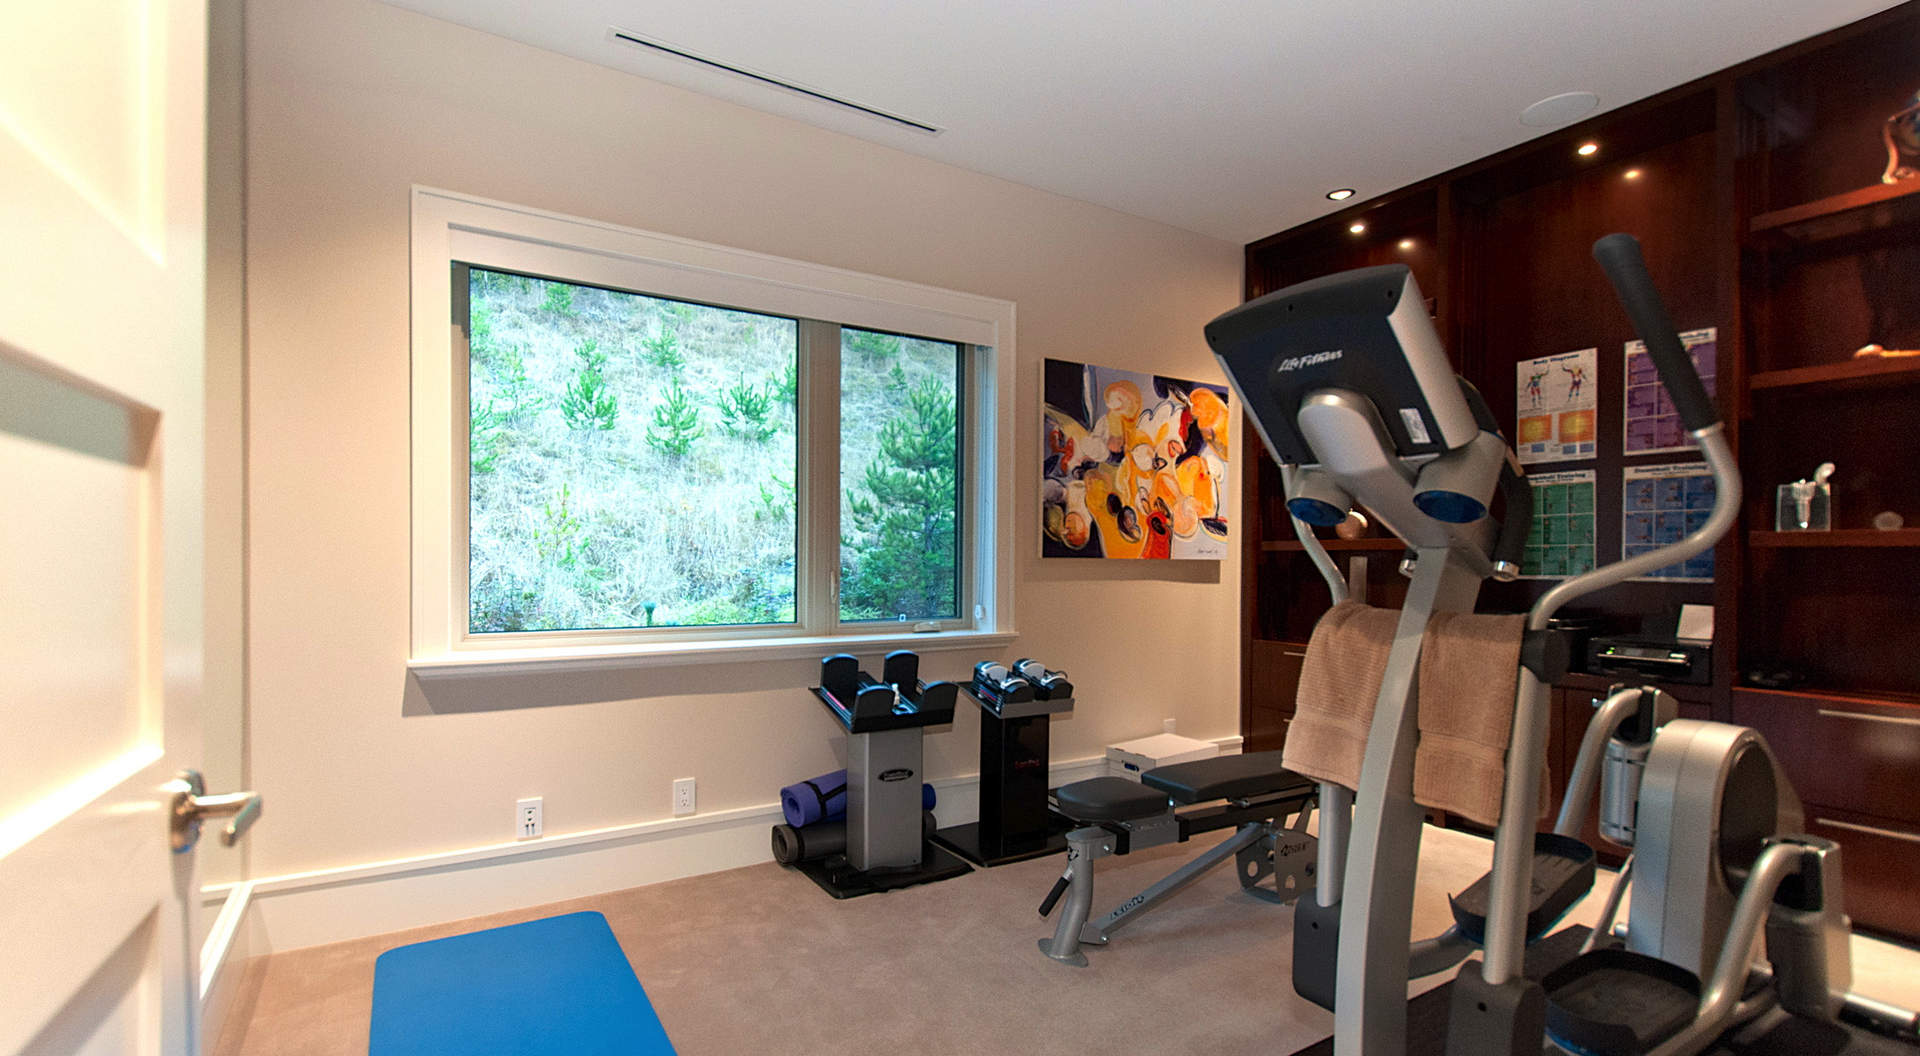 penthouse home gym | Interior Design Ideas.